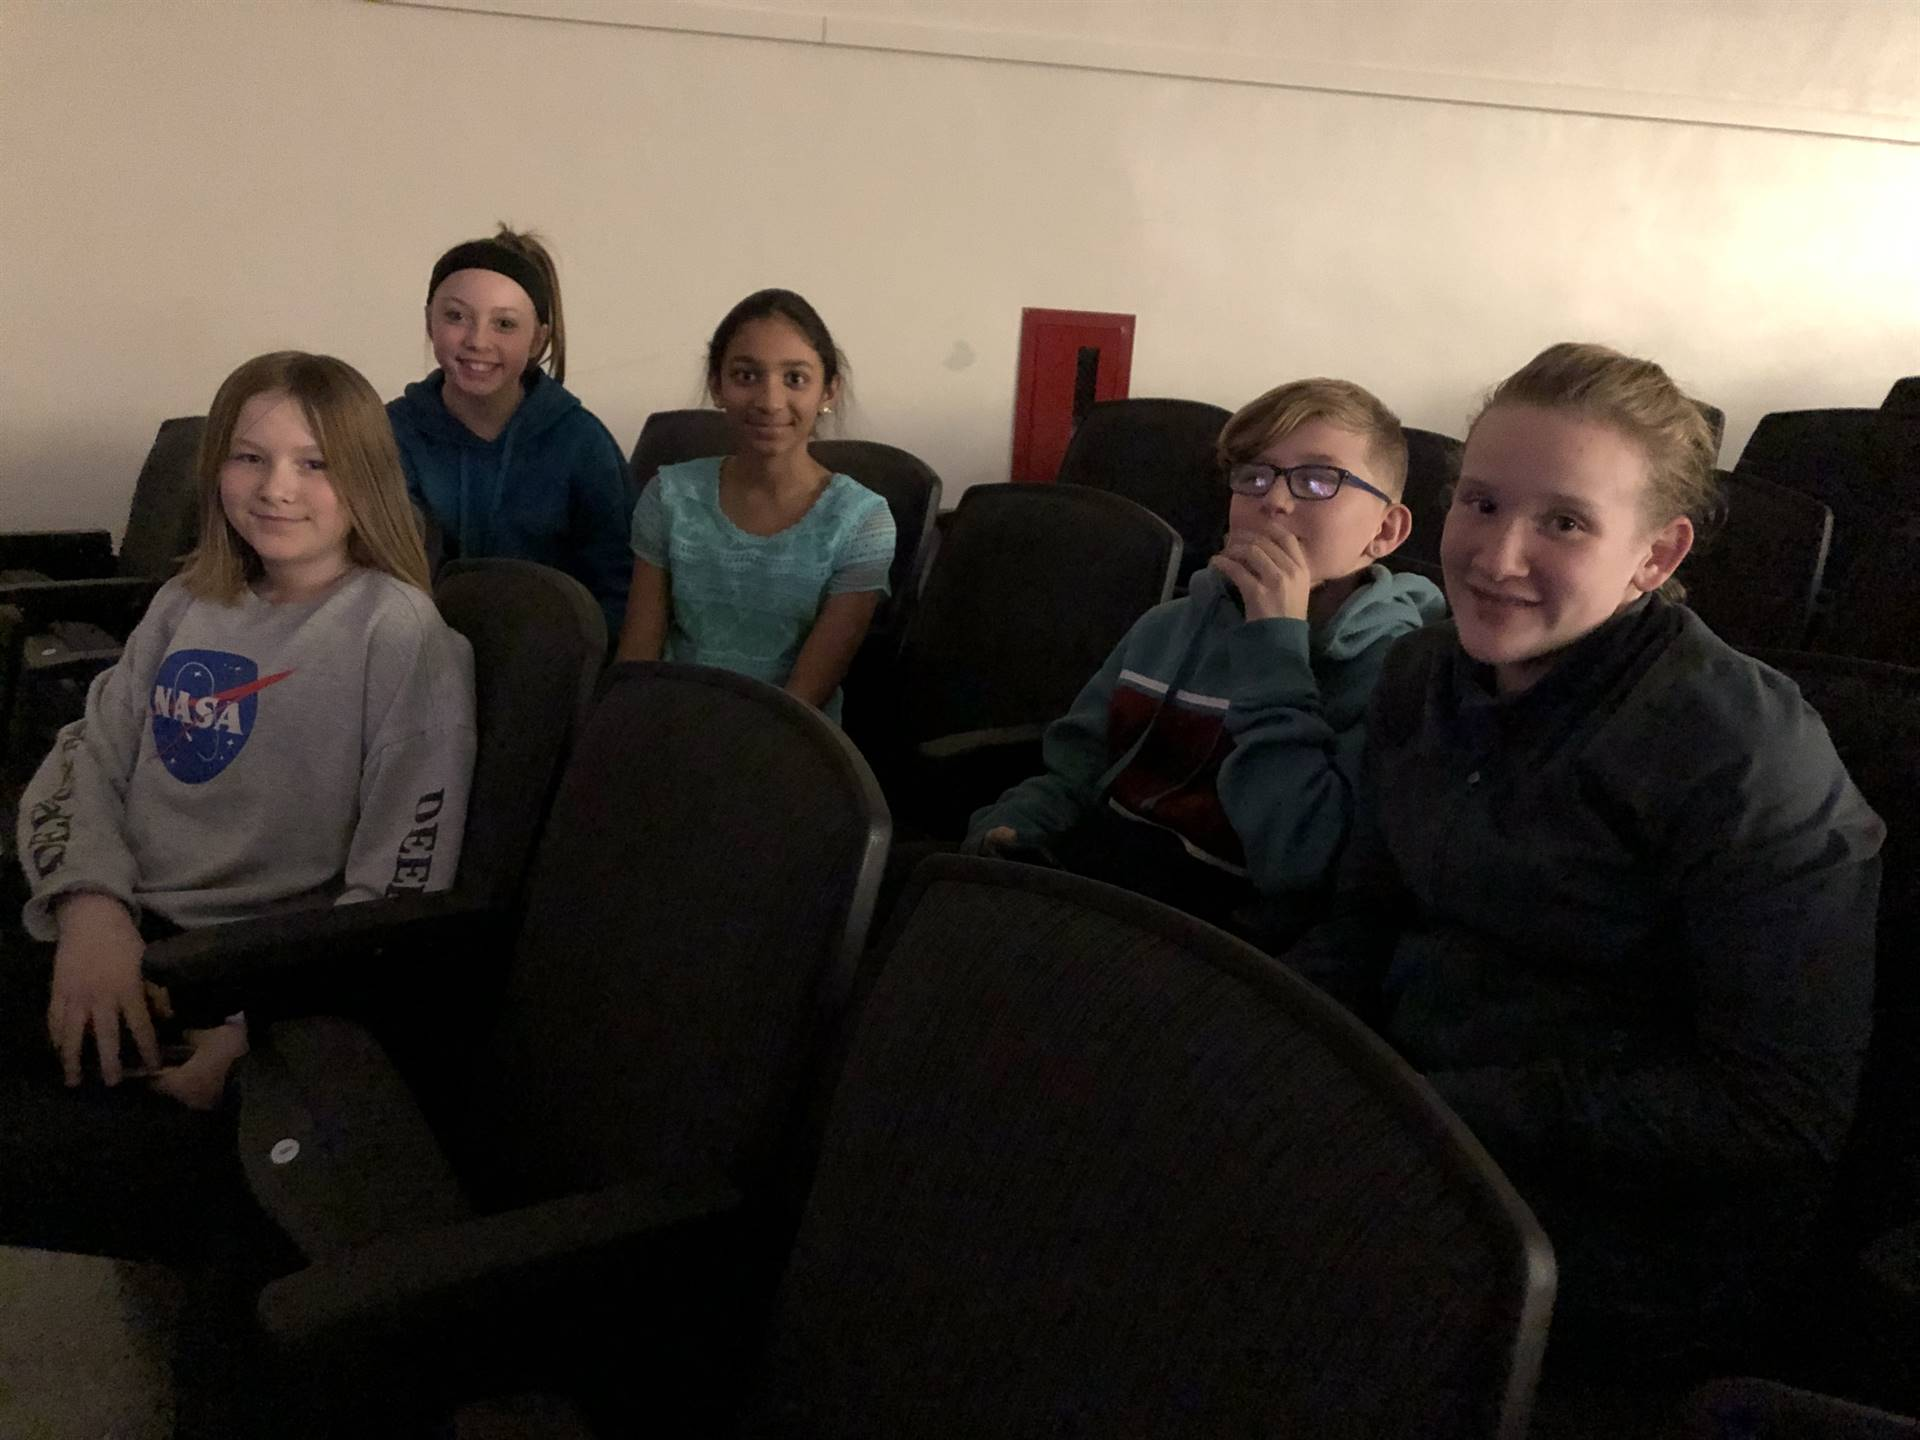 A group of middle school students sitting in auditorium seats